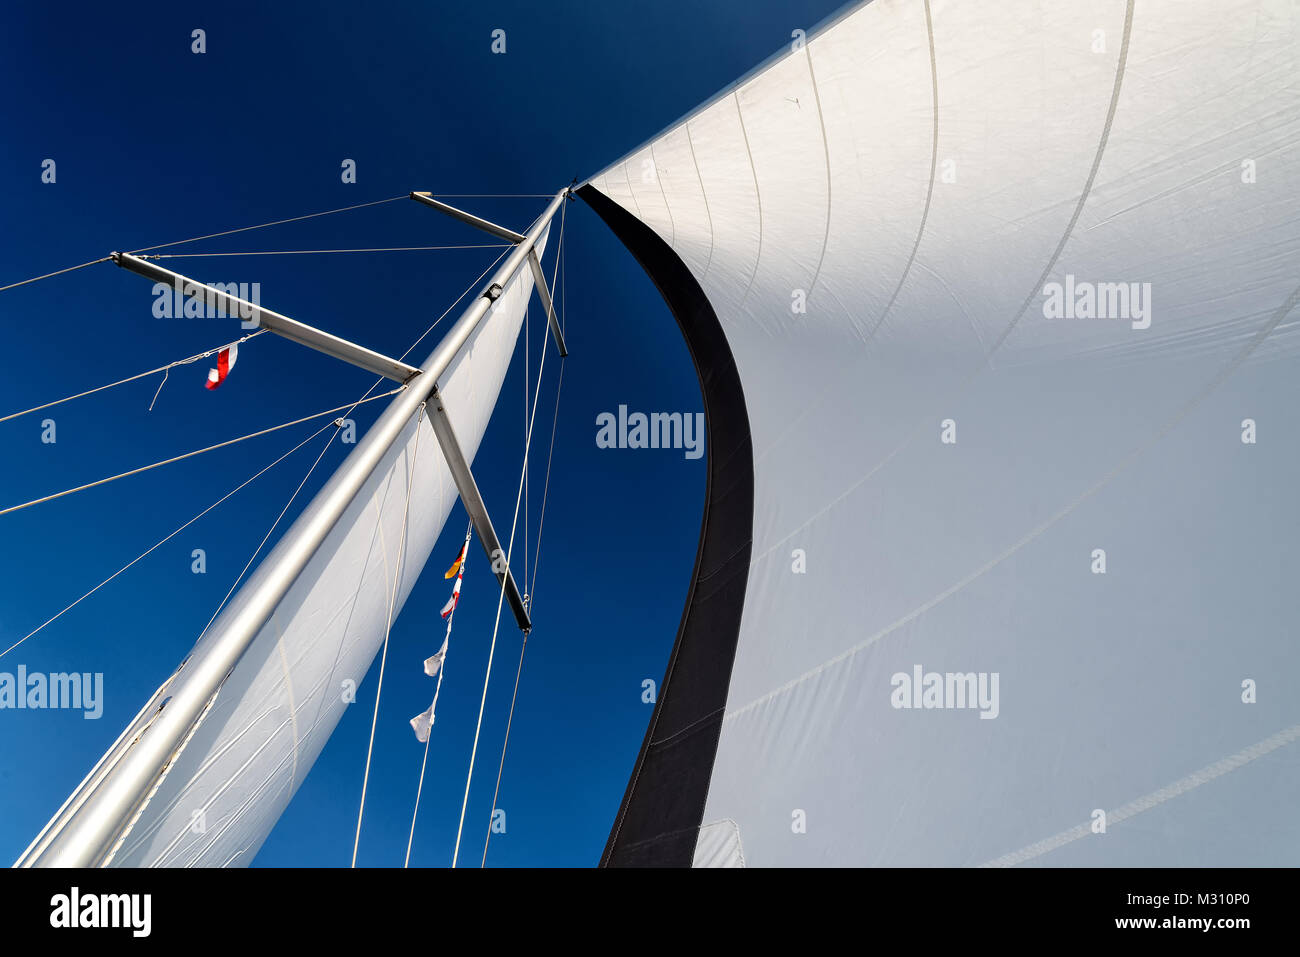 sails of a sailing yacht in the wind sailing on the ocean - Stock Image